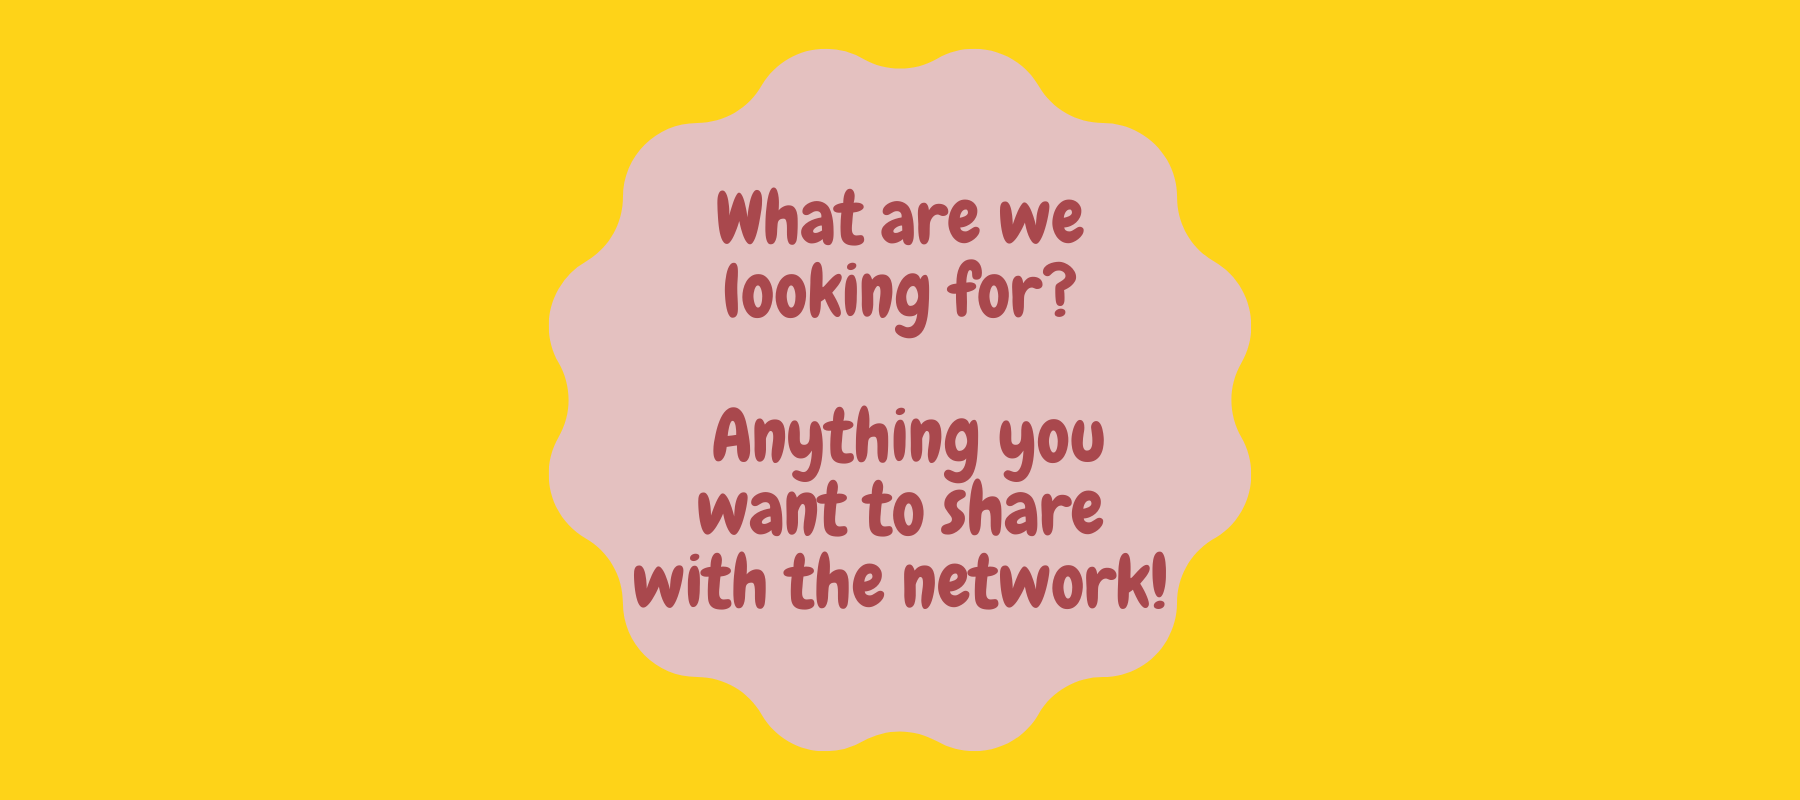 What are we looking for? Anything you want to share with the network!